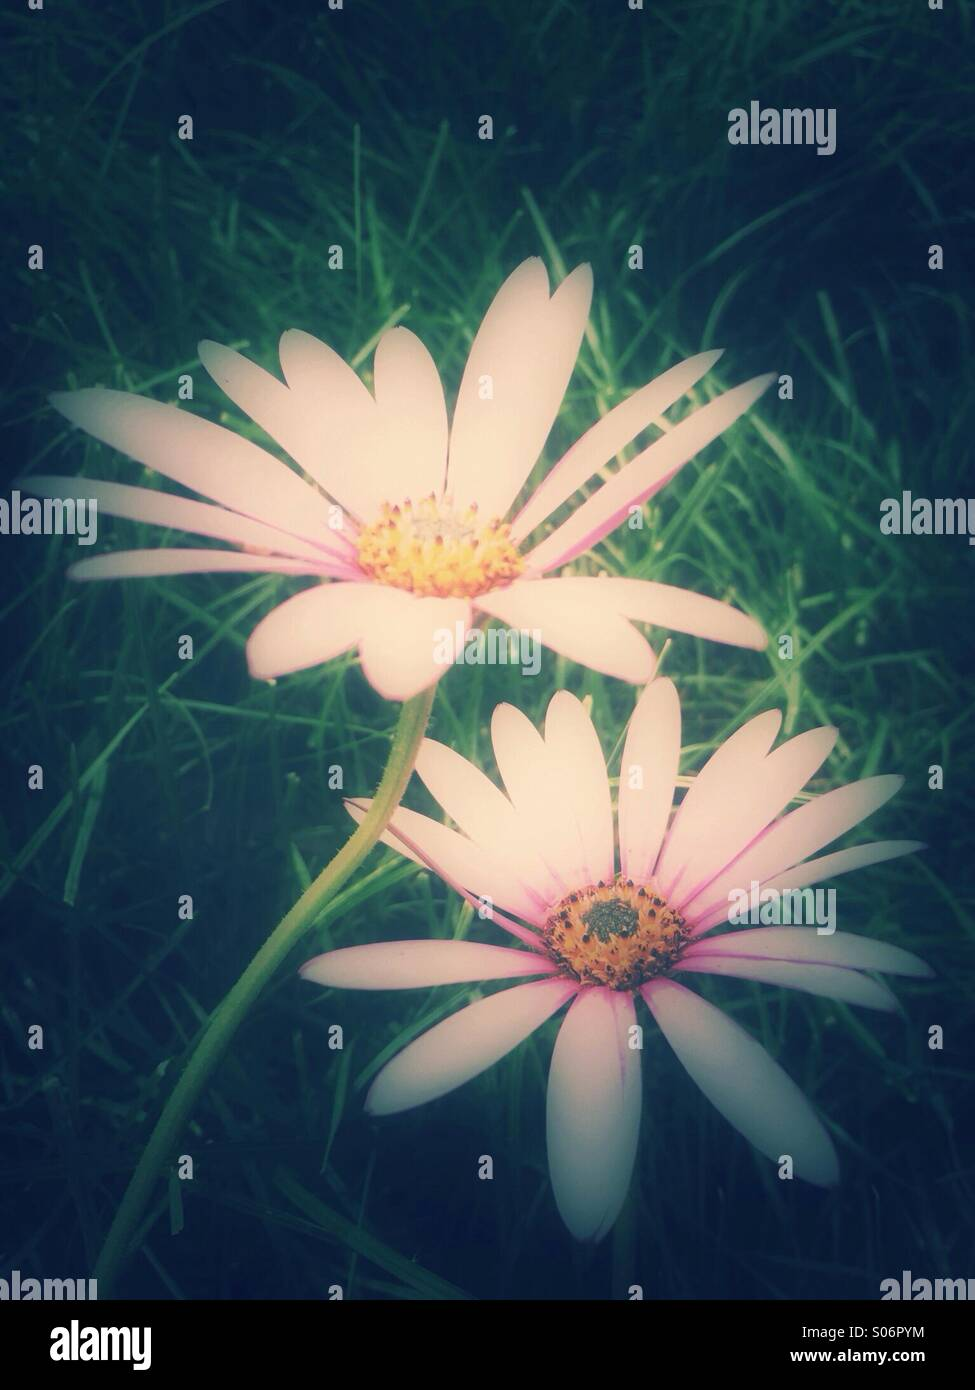 Pink daisies - Stock Image